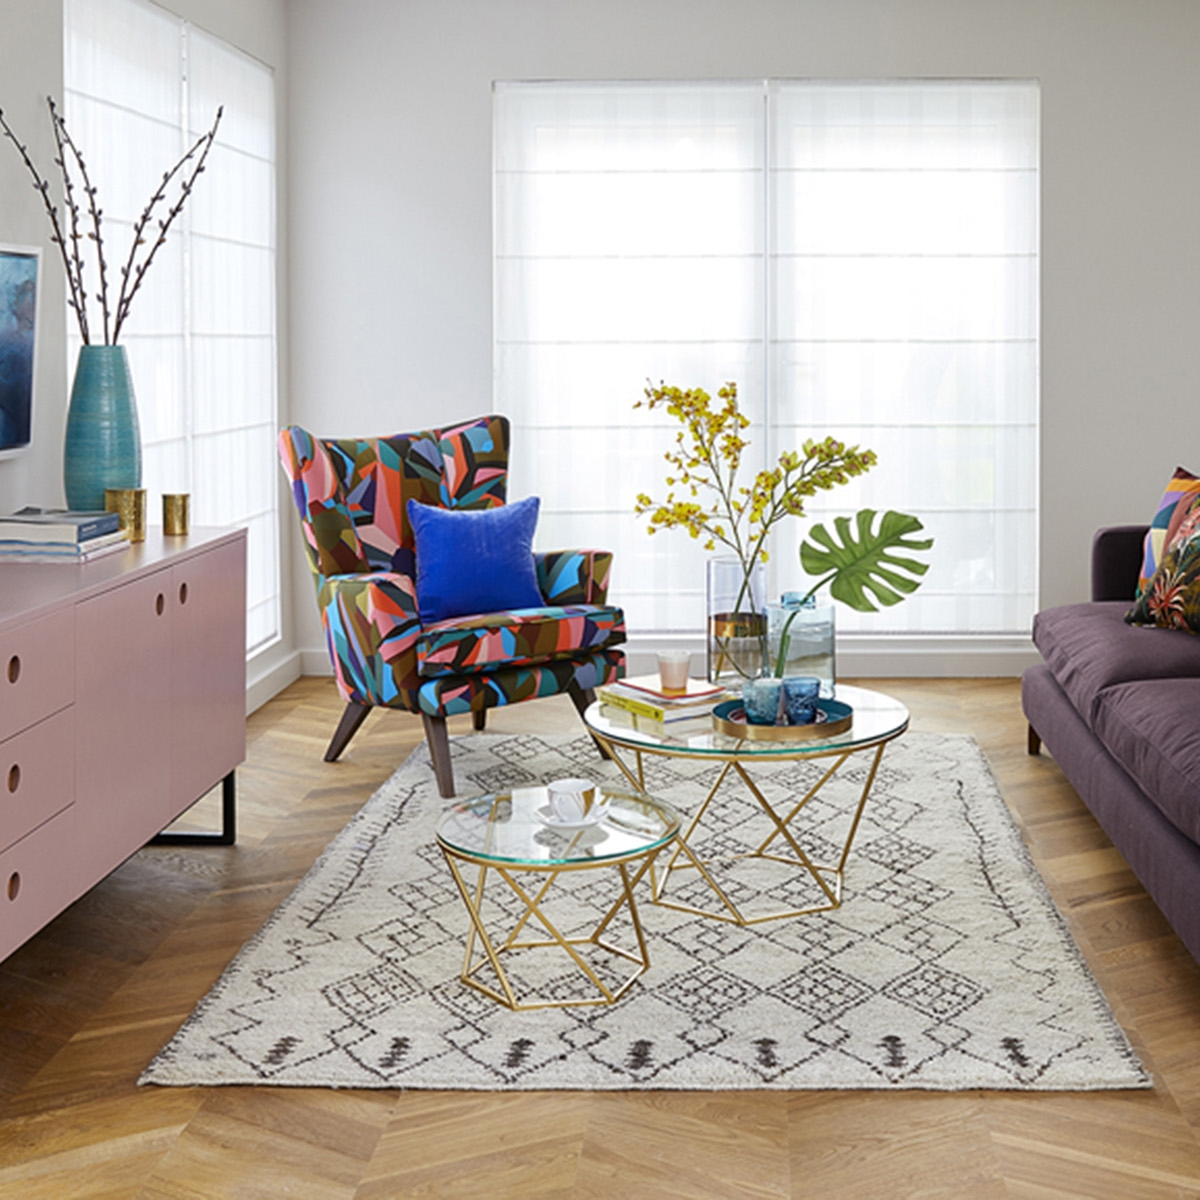 Interior designer Sophie Robinson design living room for Ideal Home Show gallery wall and pale pink sideboard and Quick-Step Intenso herringbone floor